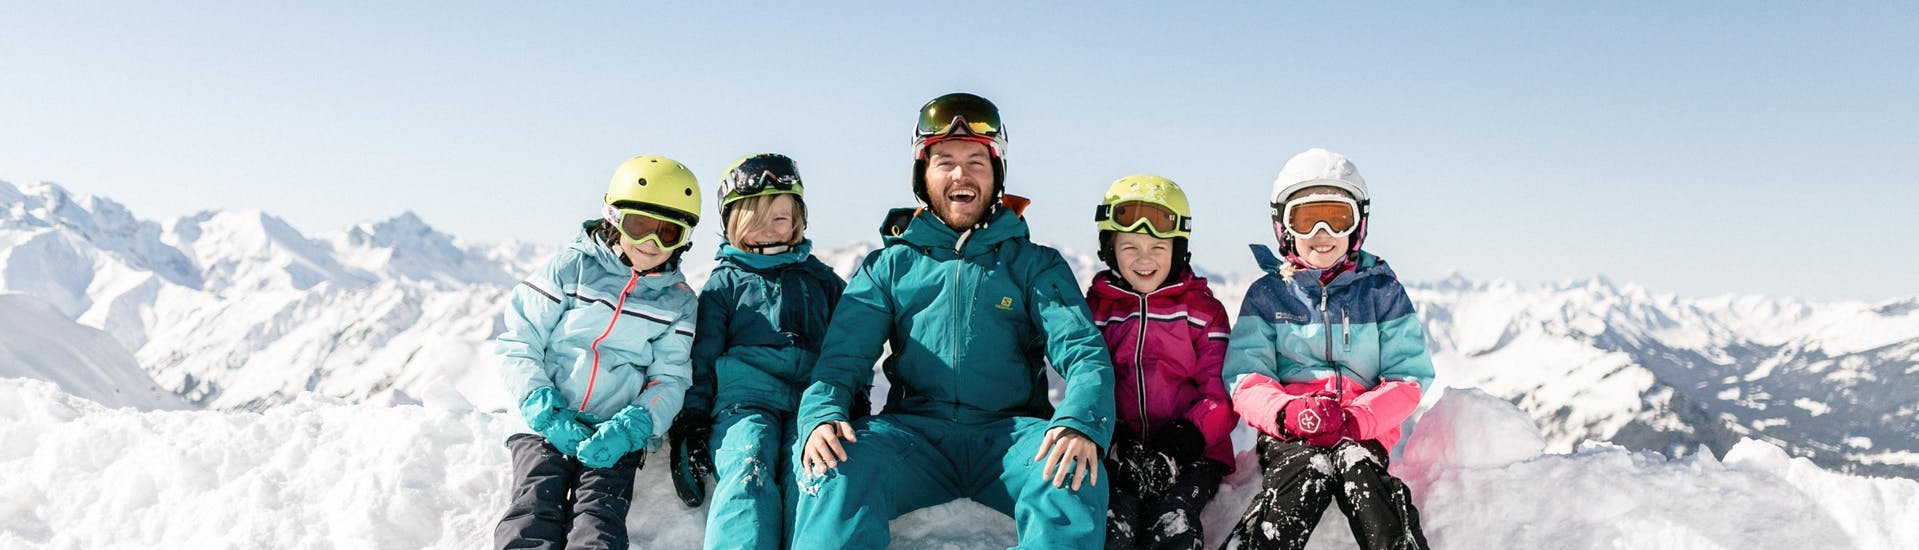 """Children are having great time during the Kids Ski Lessons """"NTC Kids Academy"""" (6 years) - All Levels with their friendly ski instructor from the ski school NTC Skischule Oberstdorf."""